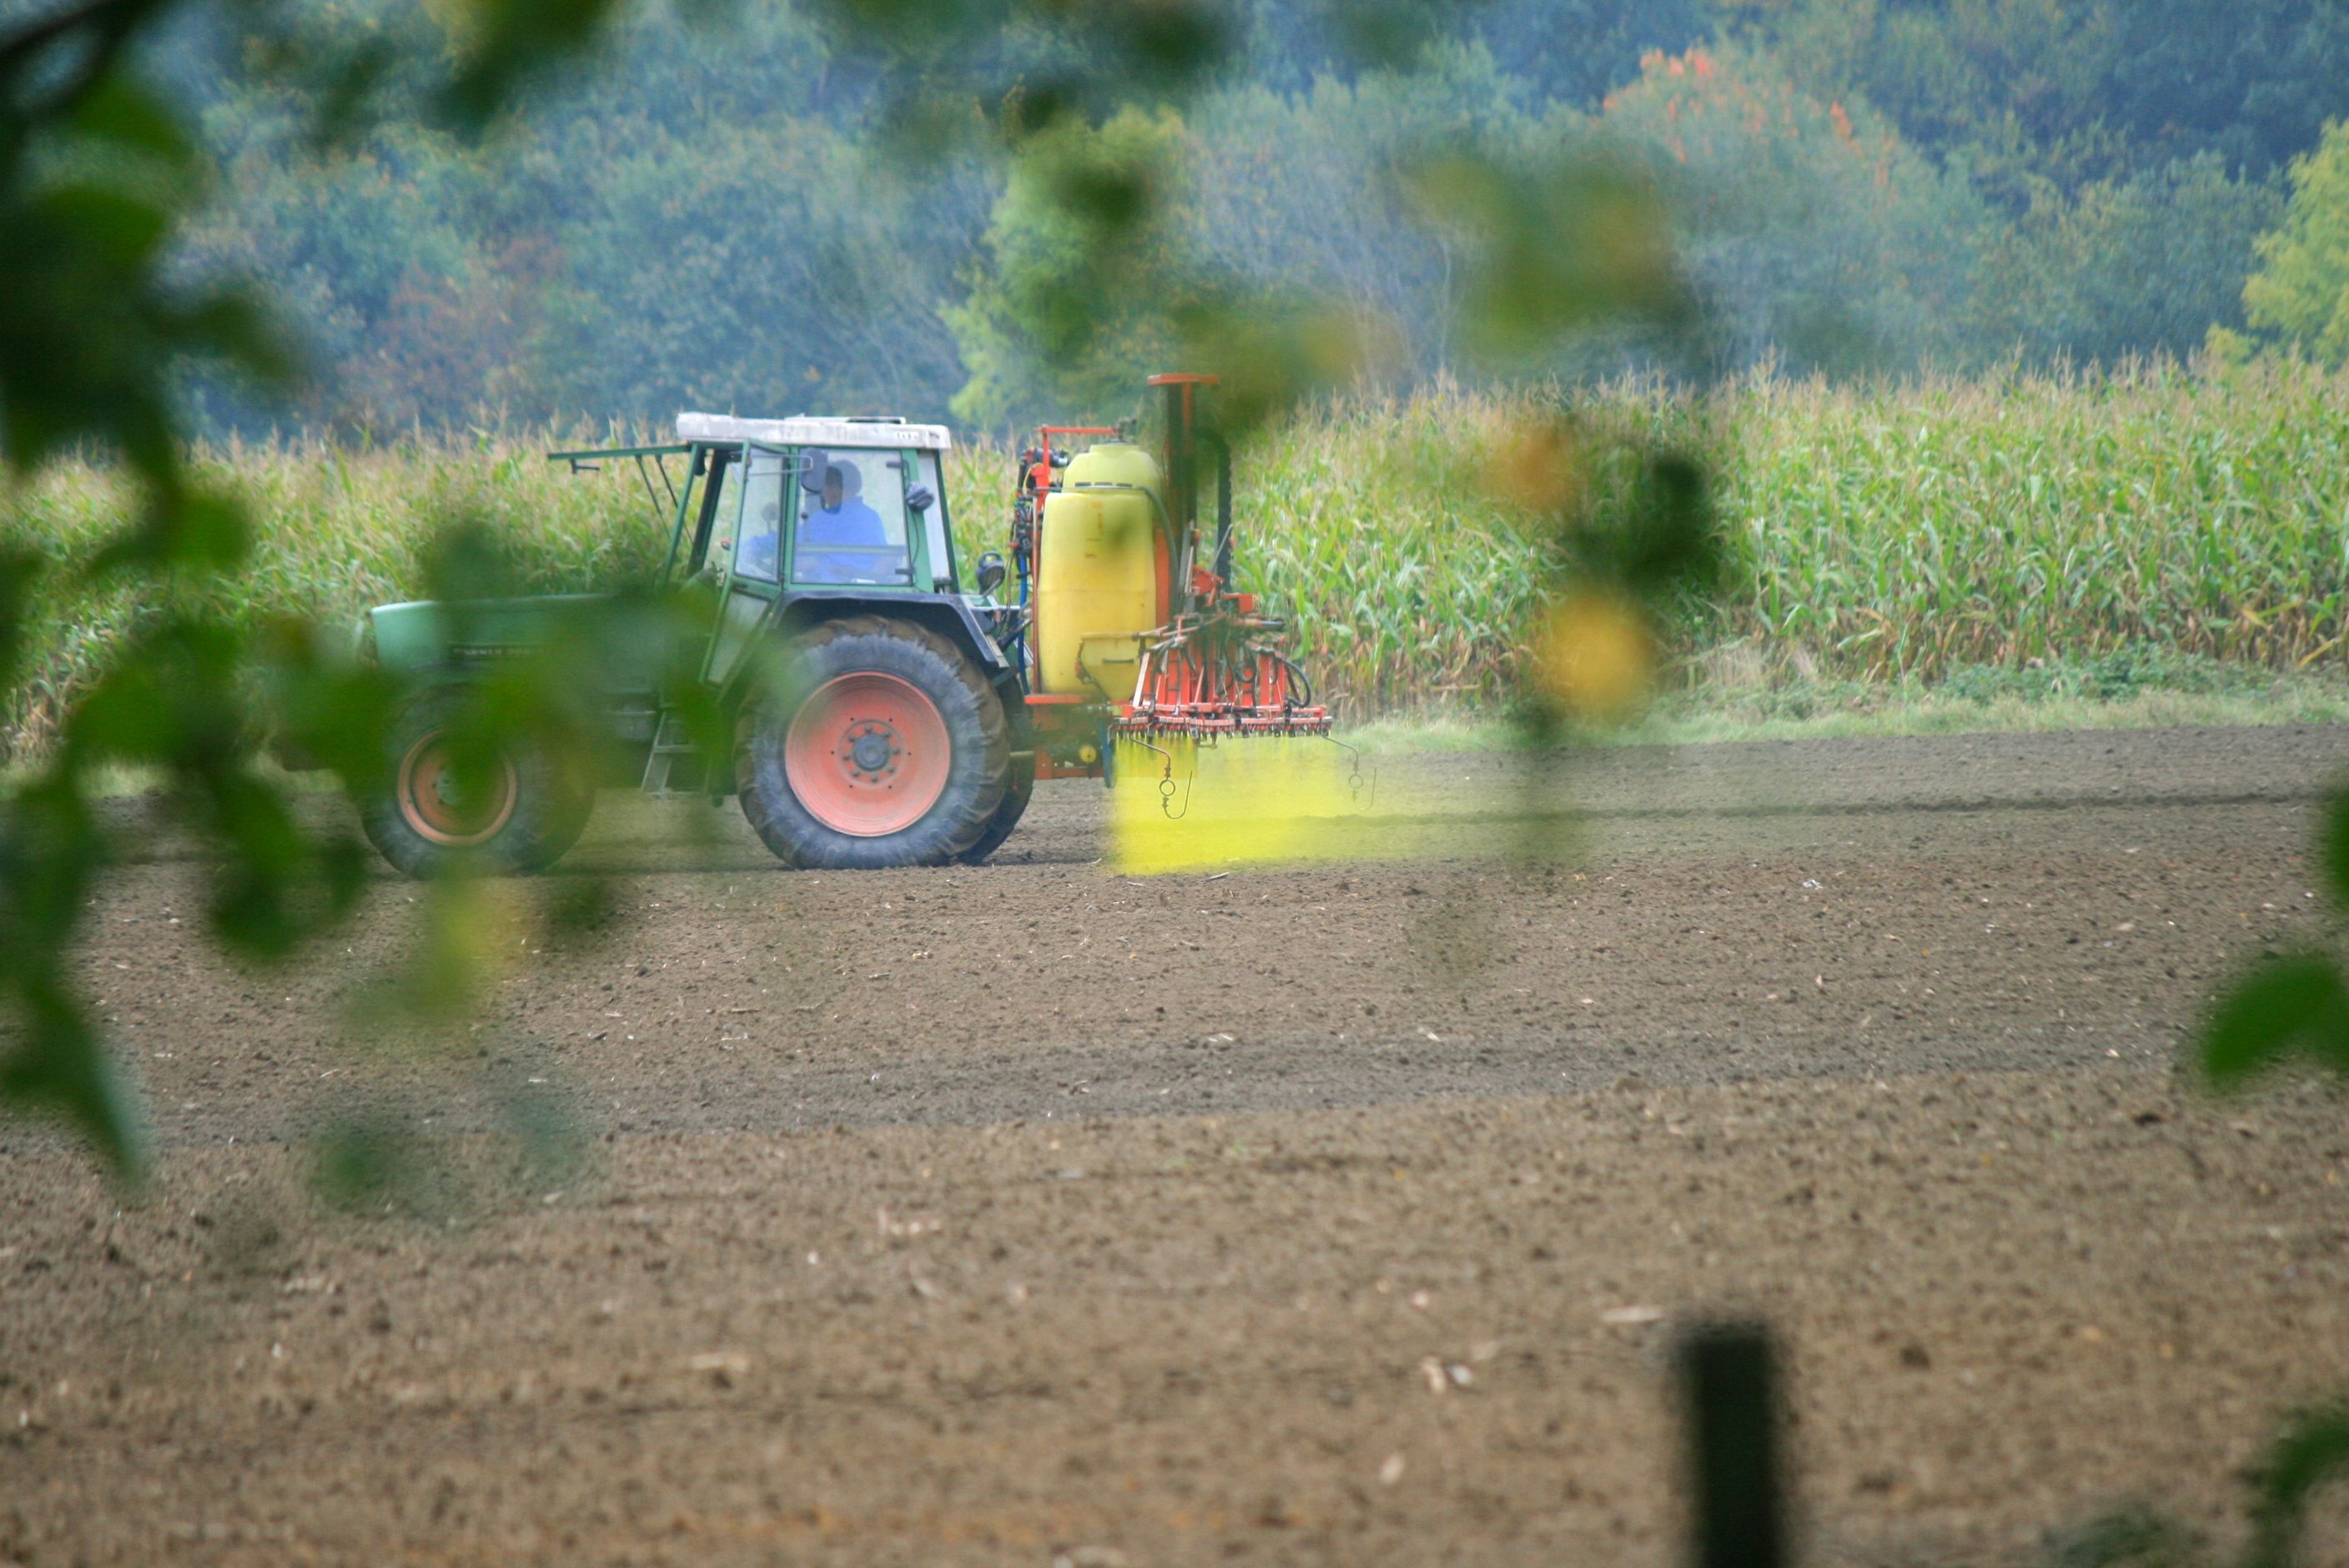 Tractor_spraying_pesticides_IMG_5235